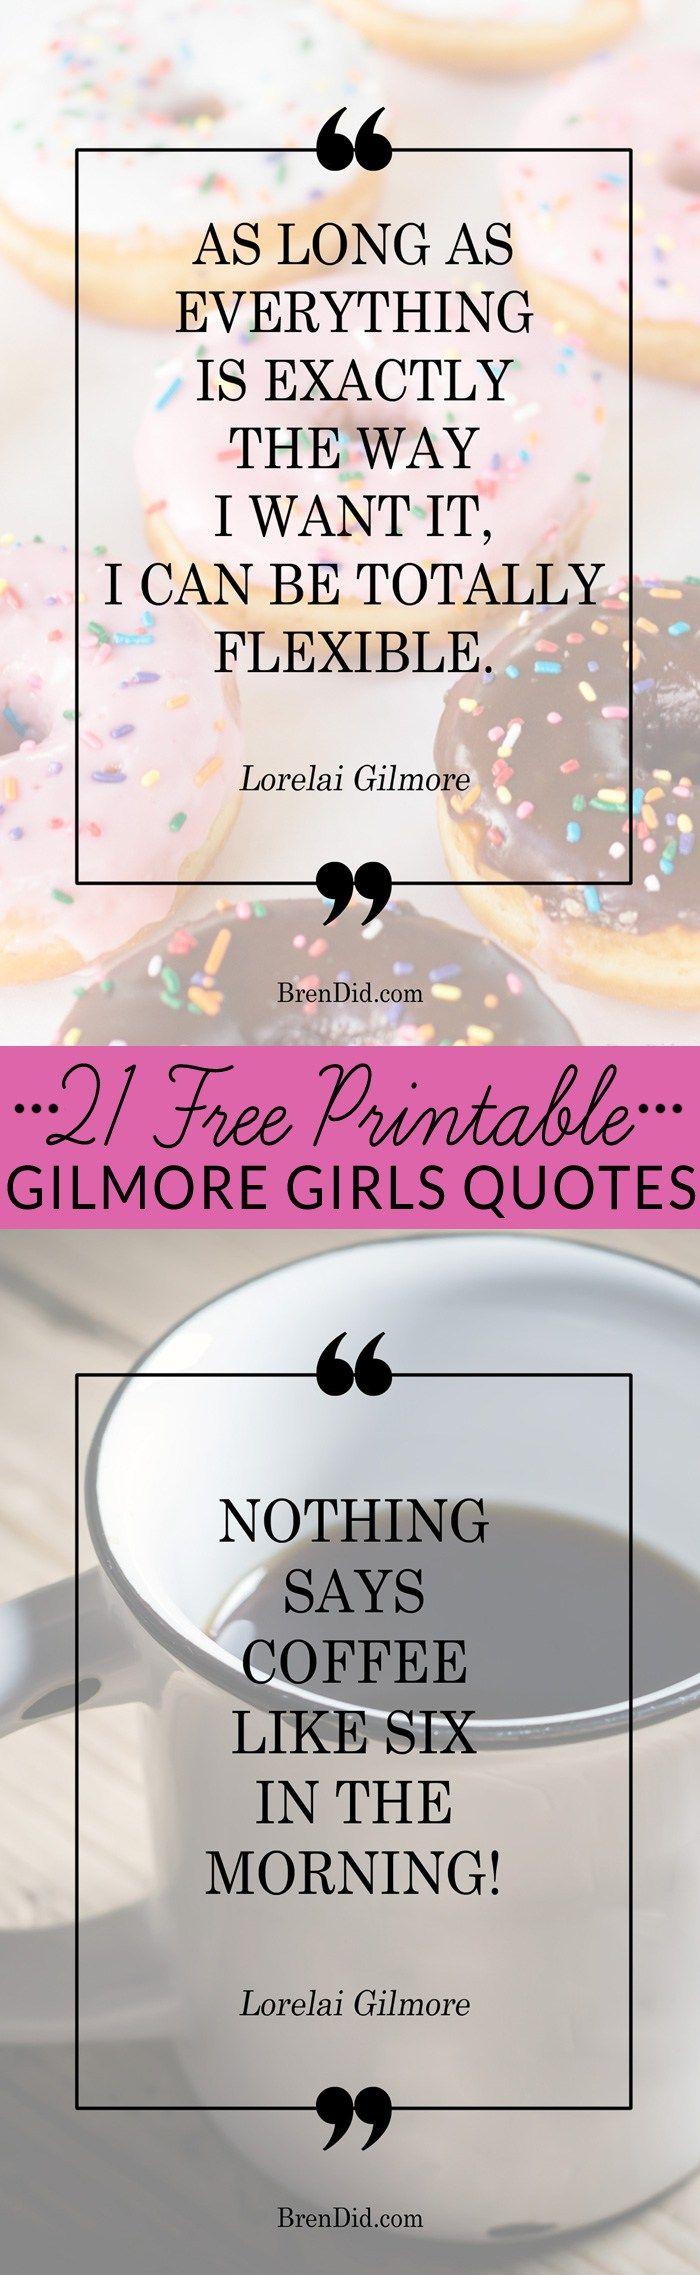 21 free printable gilmore girls quotes | ogt blogger friends